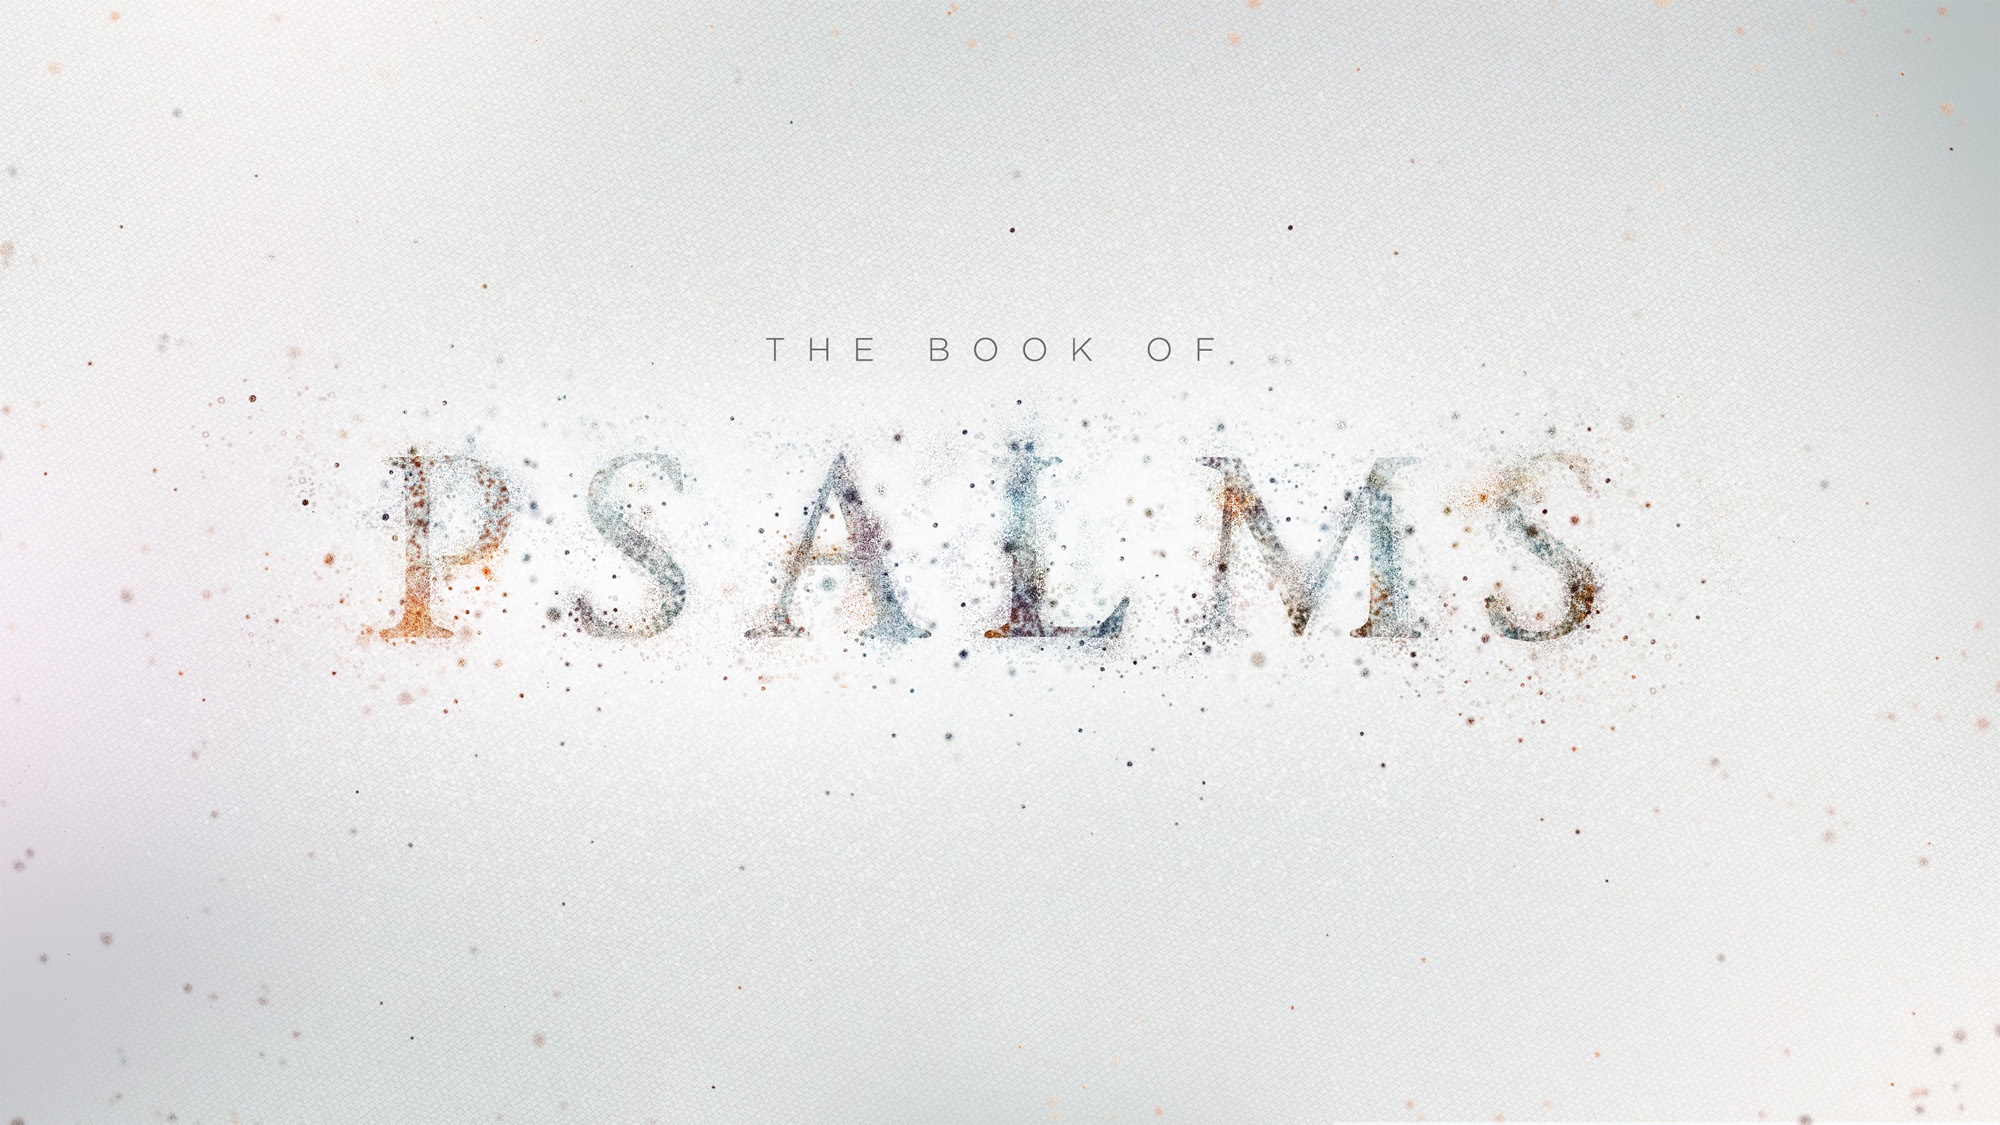 the_book_of_psalms-title.jpg